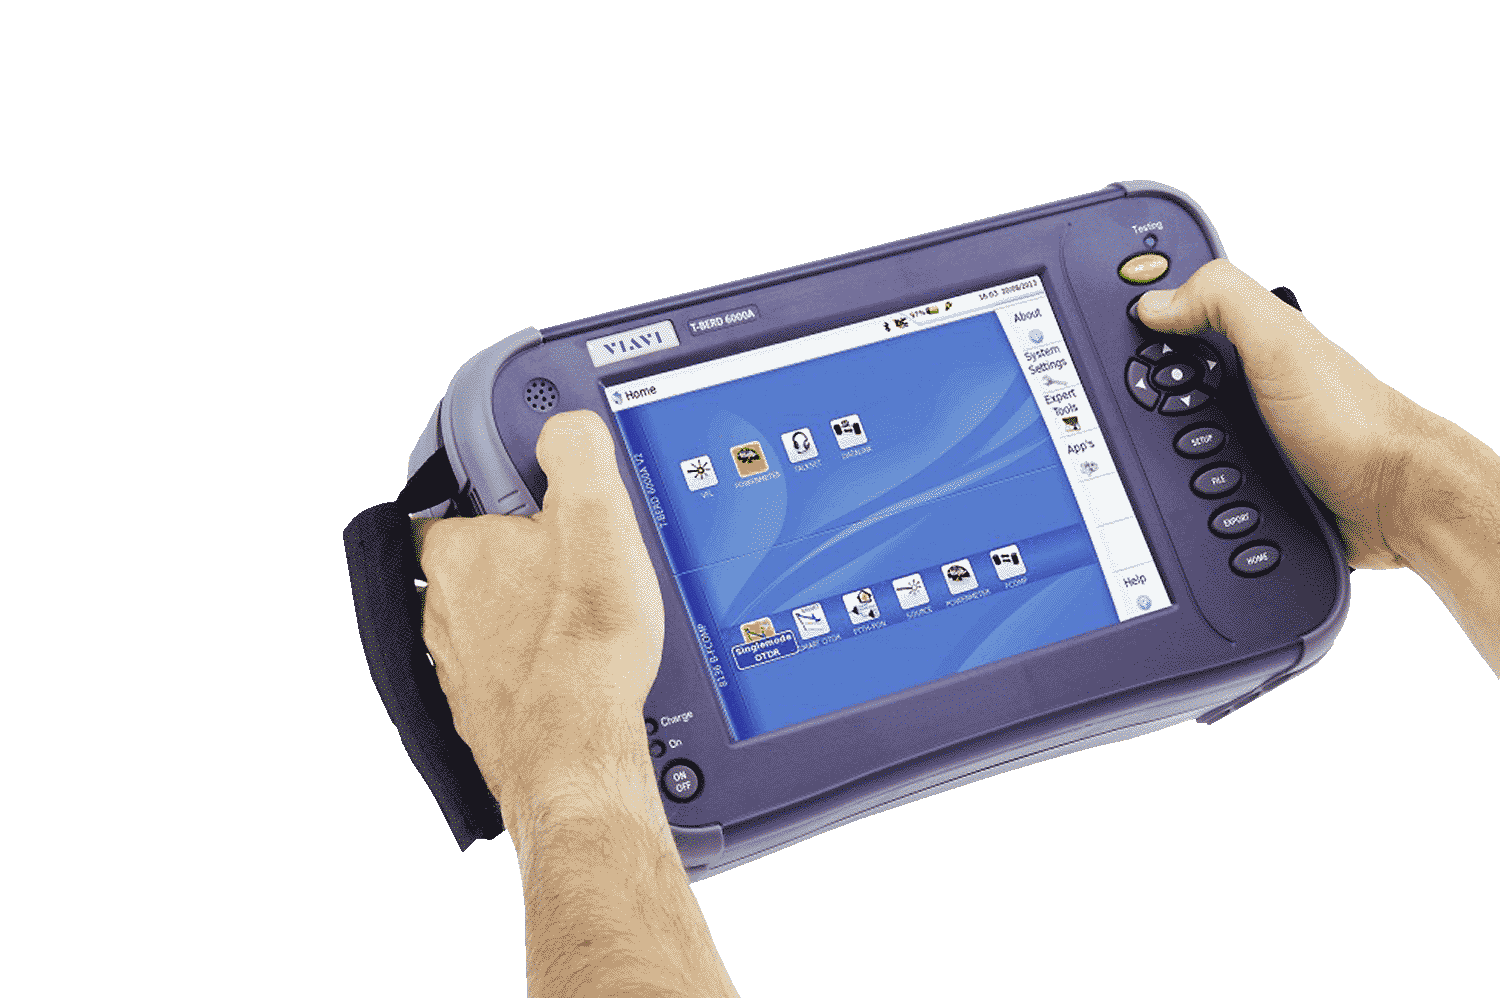 hand-held-VIAVI-mts-6000A-fiber-optic-test-device-